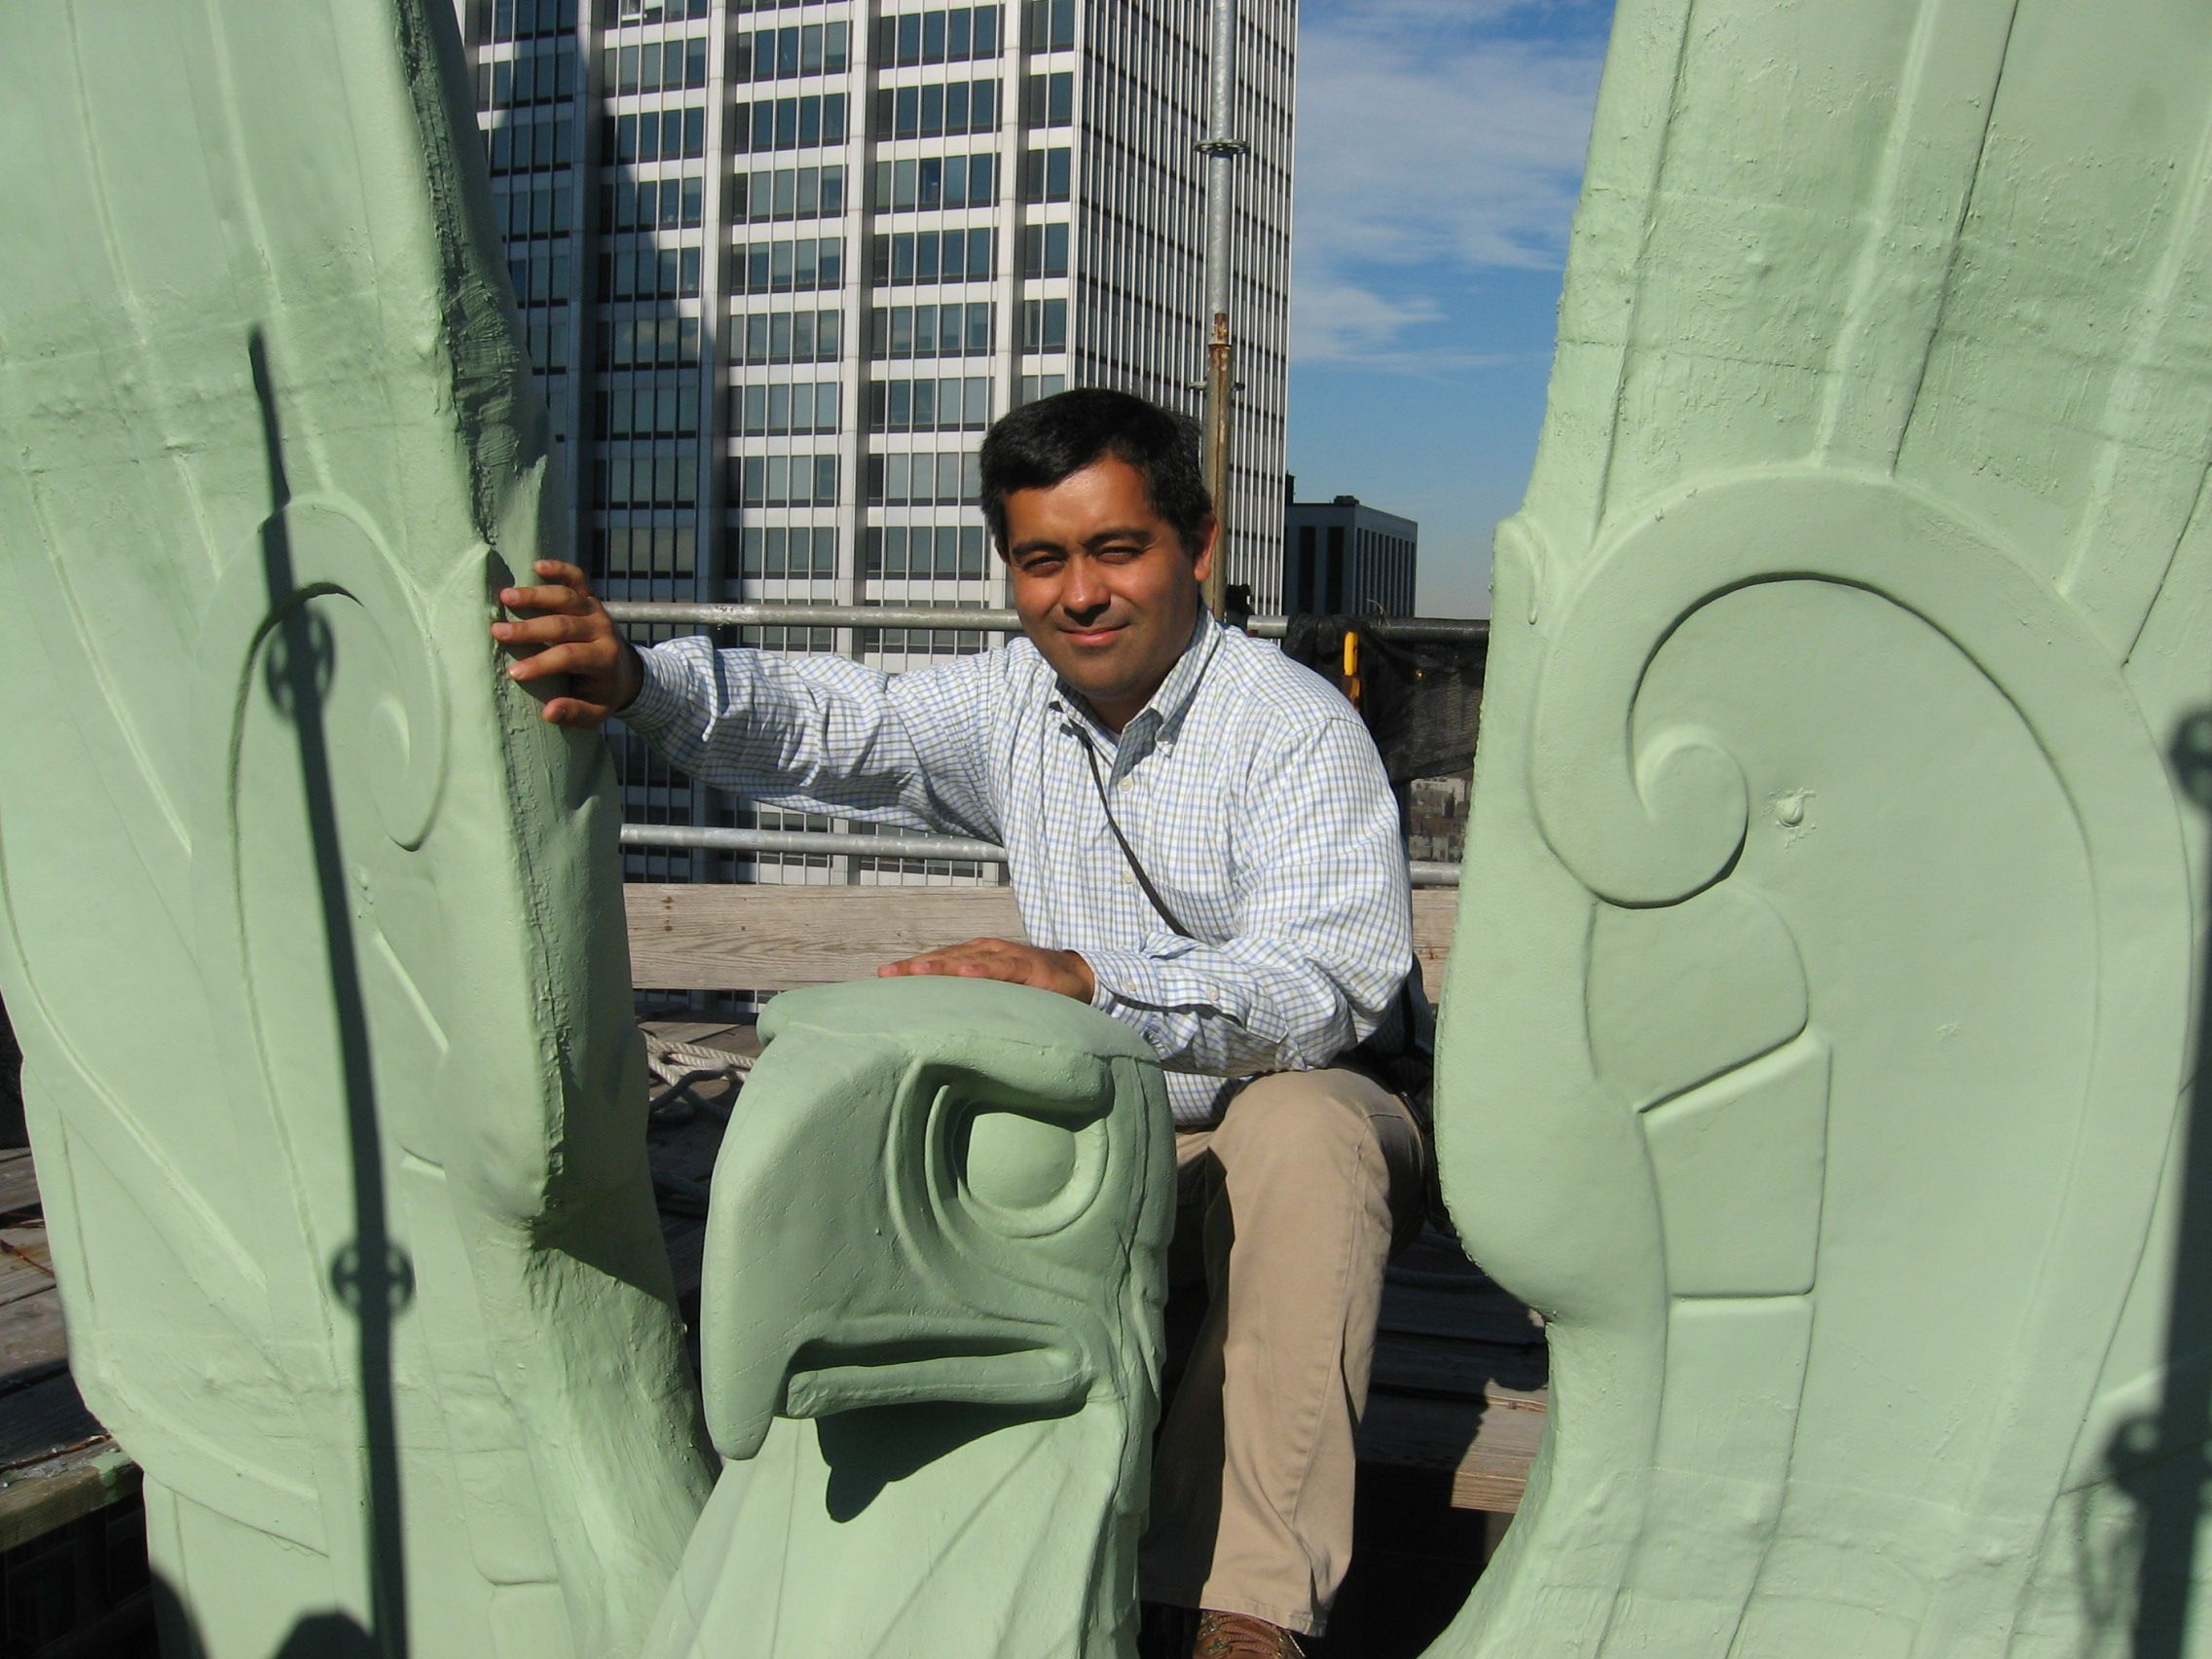 Our intrepid architects: Juan Kuriyama, AIA sits astride the eagle crowning 48 Wall Street in New York.